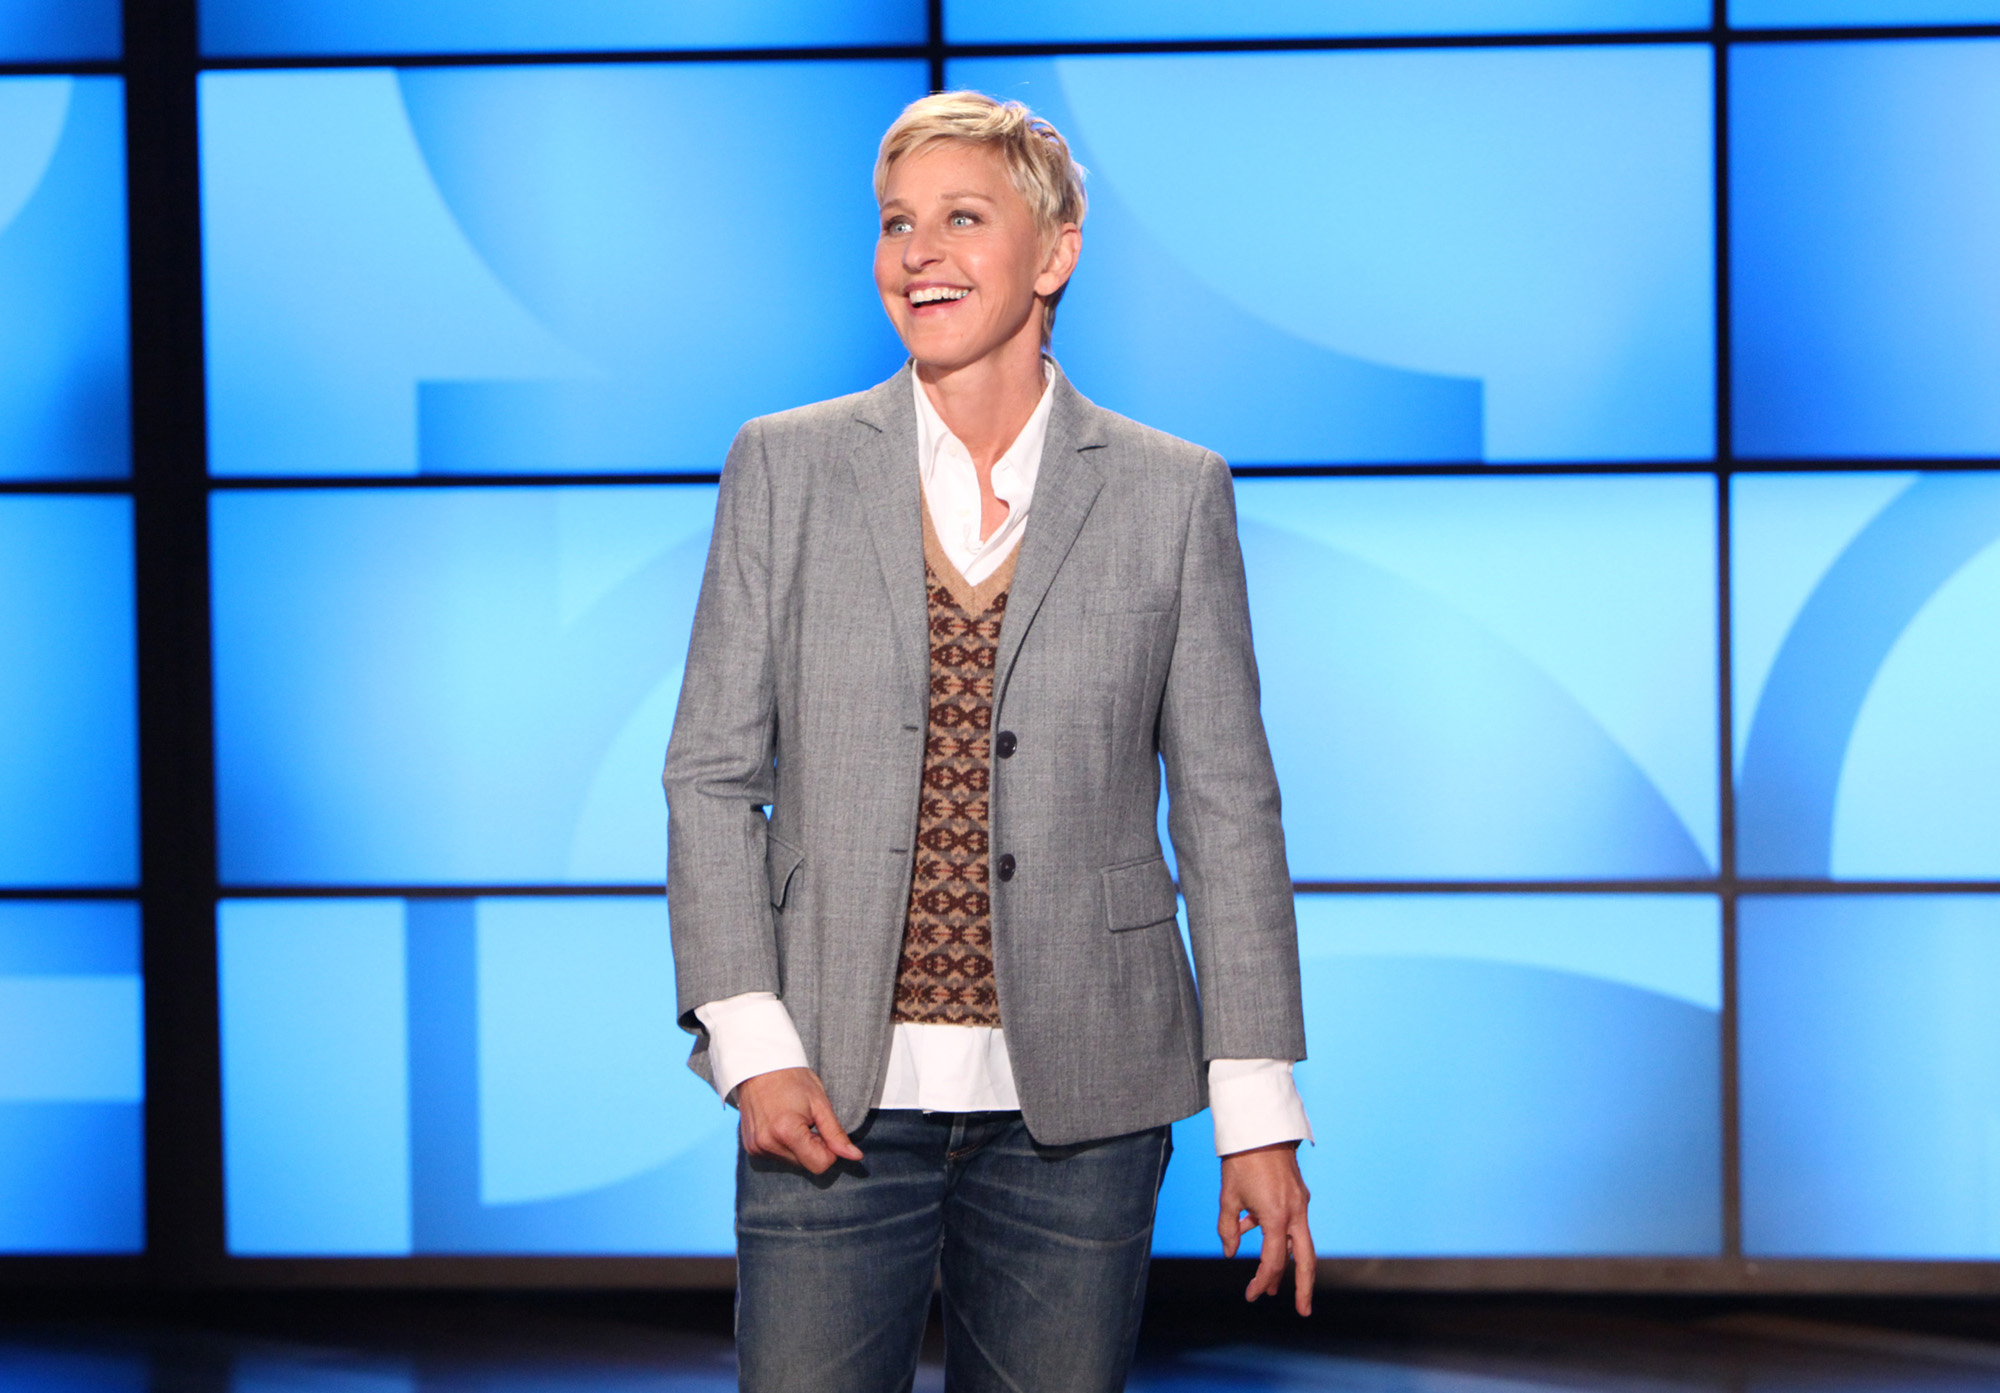 Ellen DeGeneres is among Greatest 10 Talk Show Hosts 2017